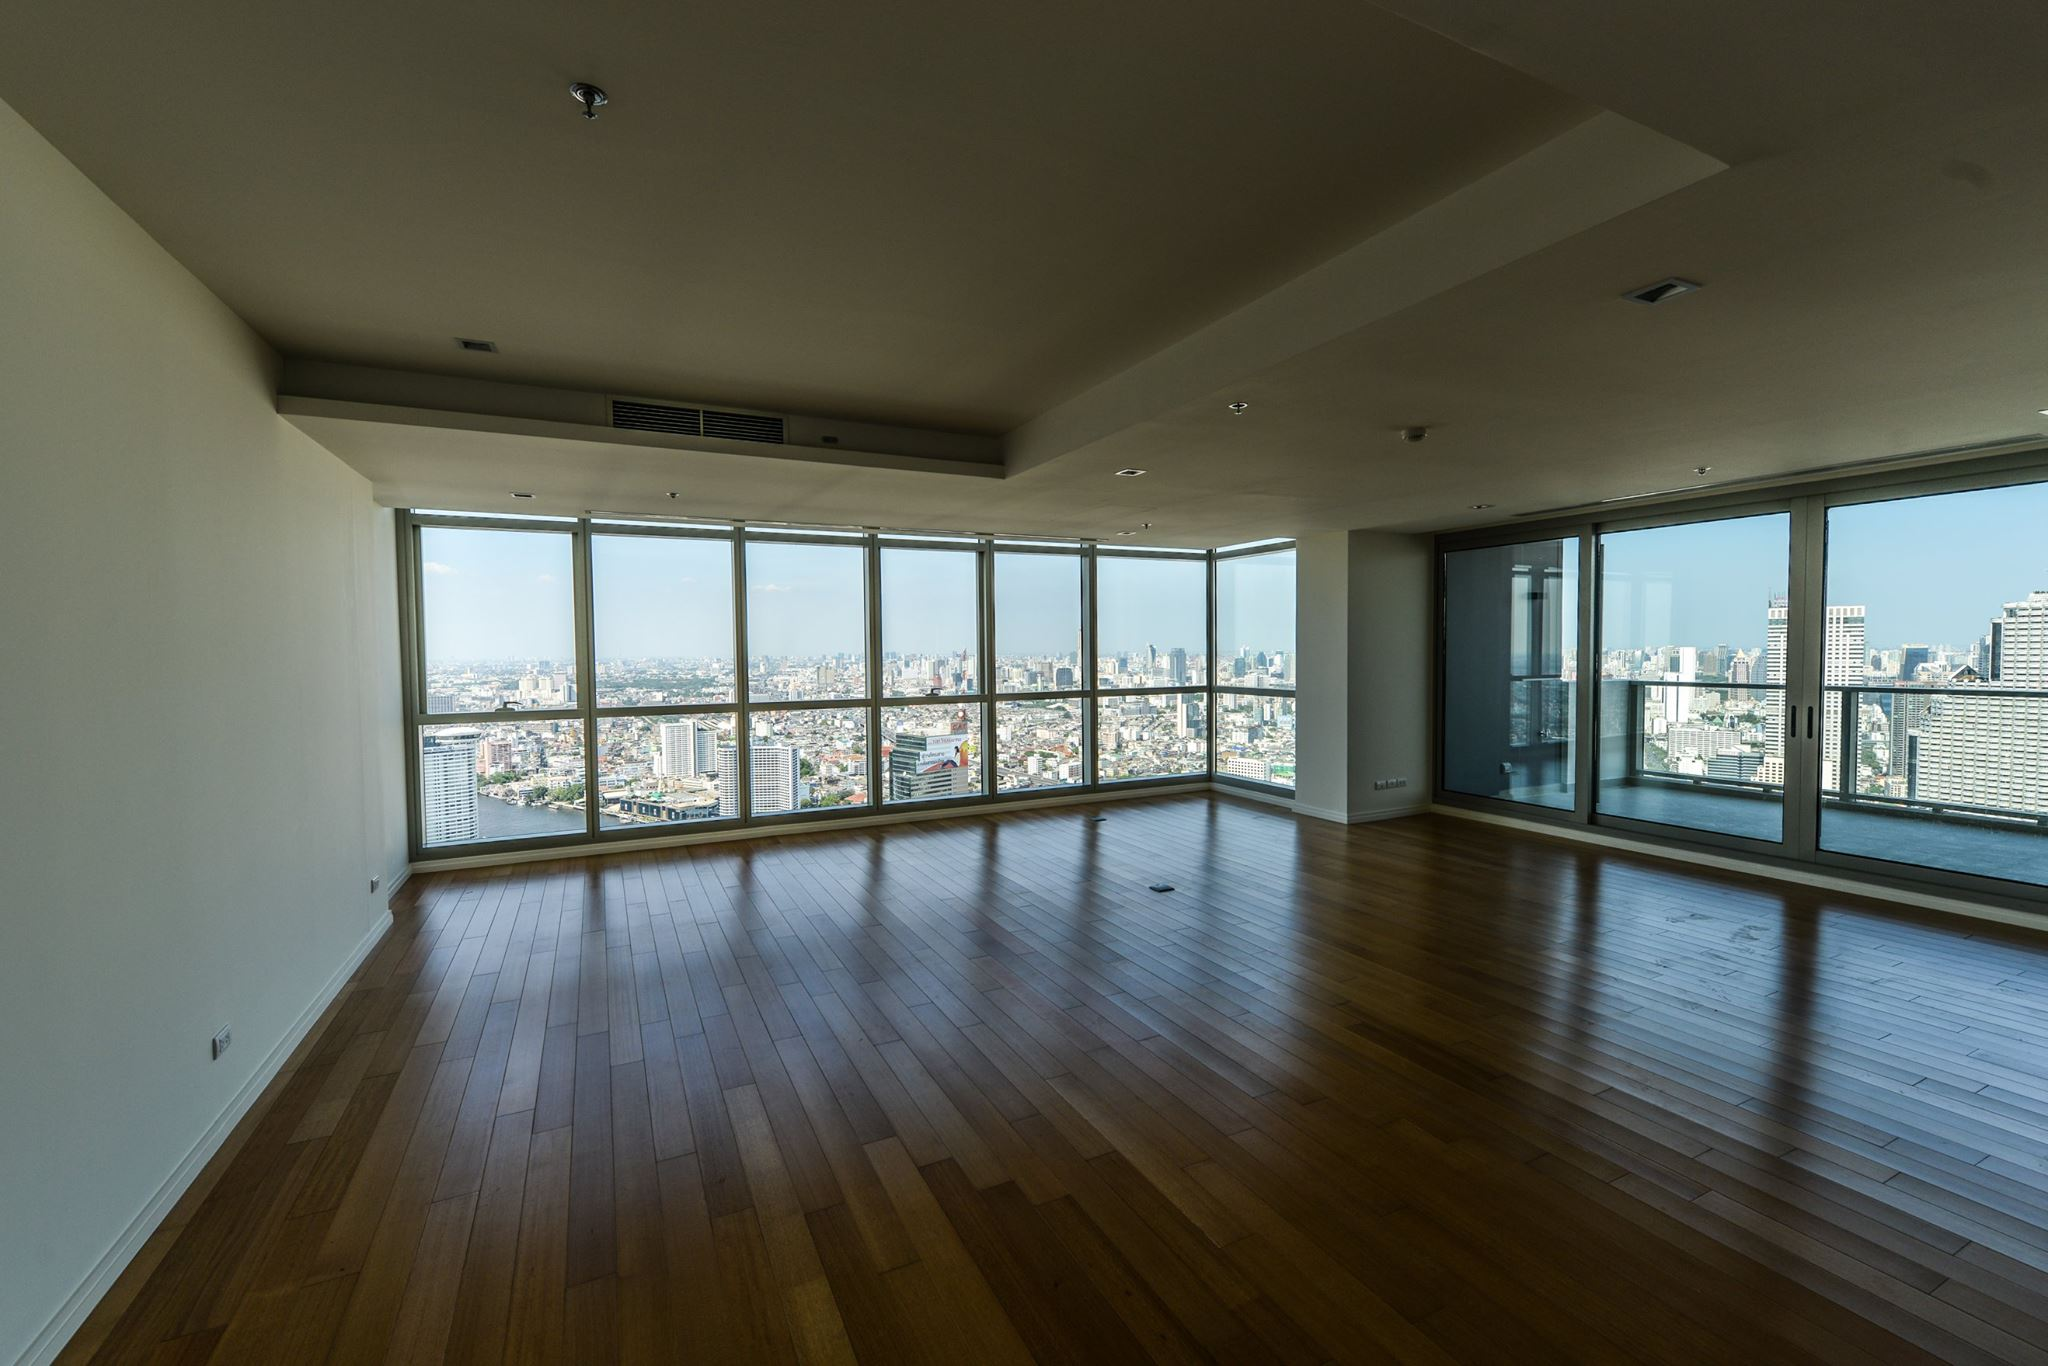 VisionQuest Thailand Property Agency's The River Penthouse 942sq.m spectacular 180 degrees river and city views 21